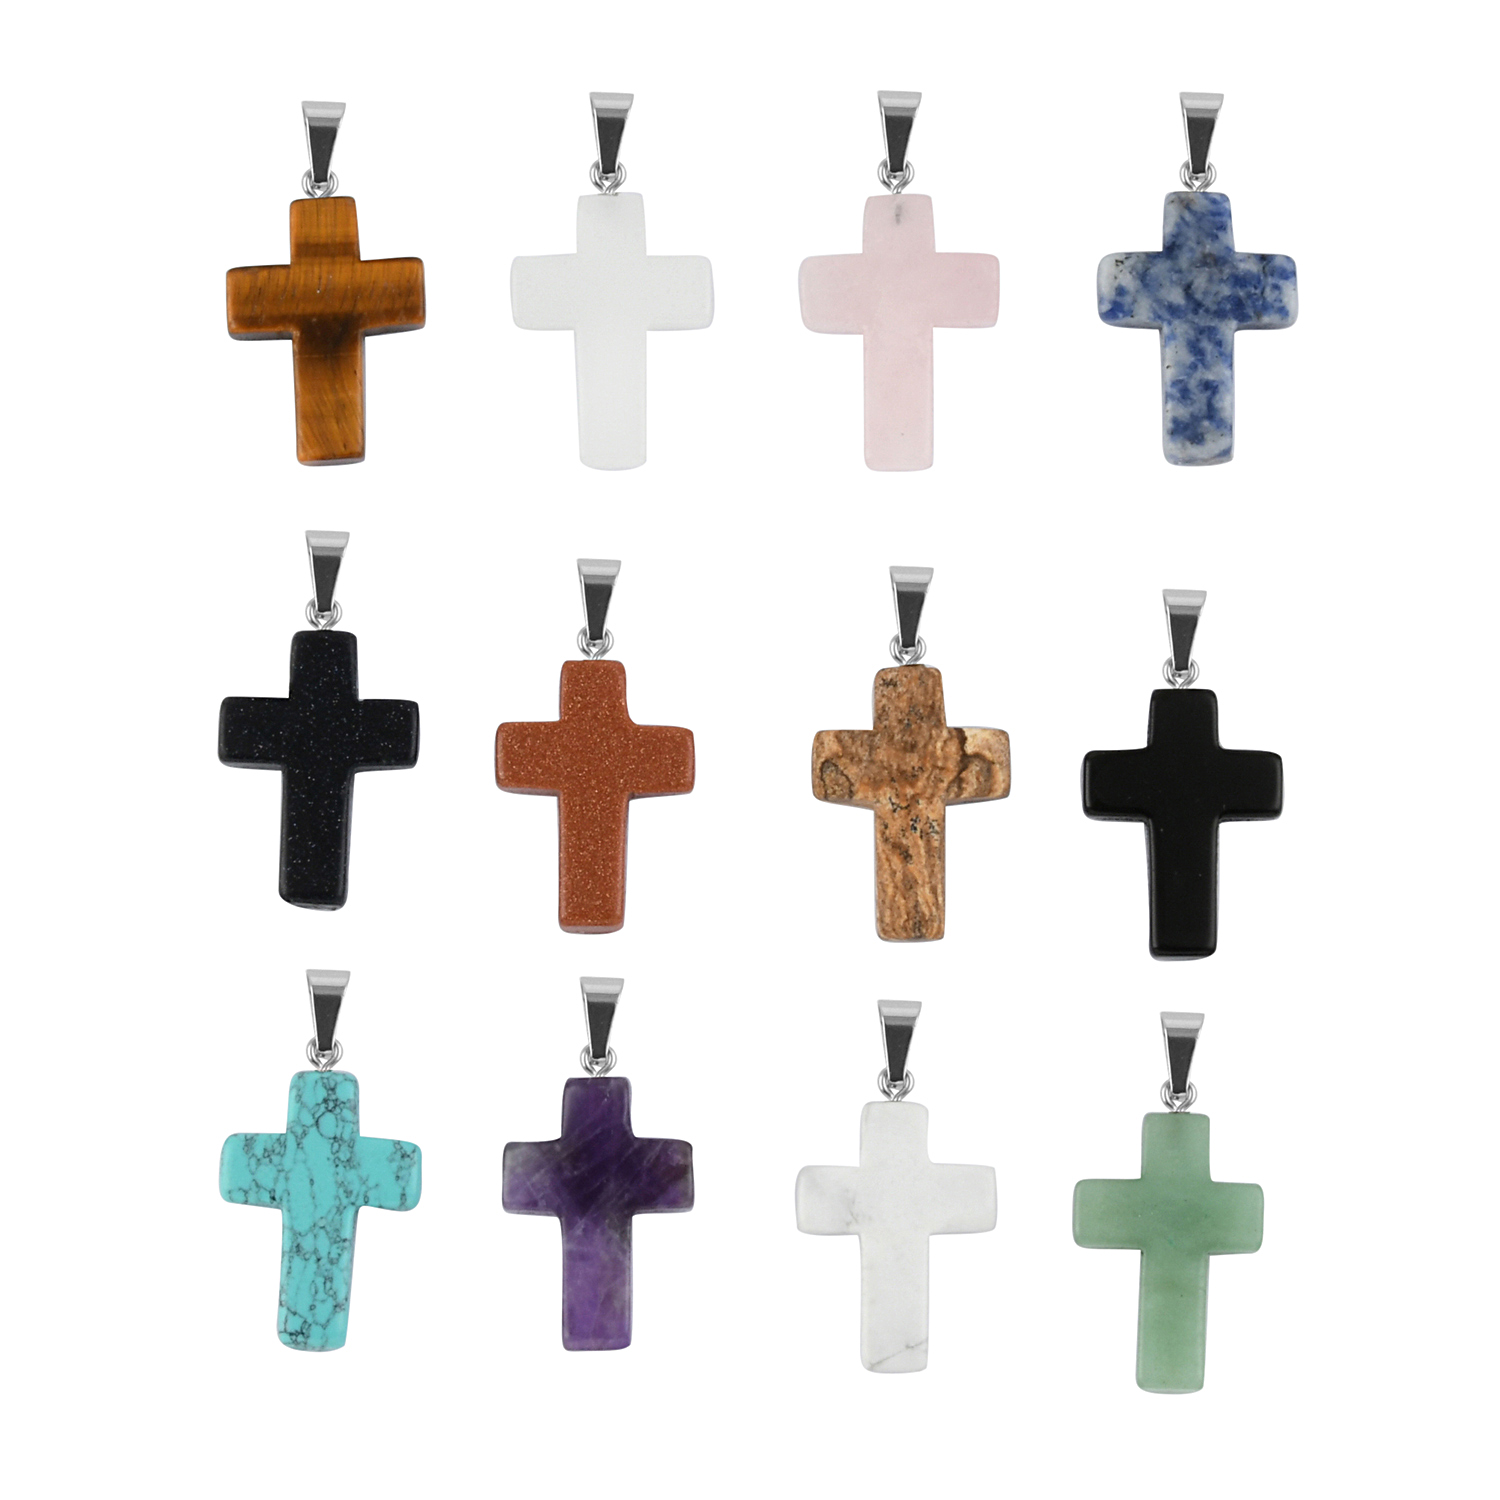 Top 10 Jewelry Gift Stainless Steel Polished Black CZs Cross Necklace Pendants Jewelry